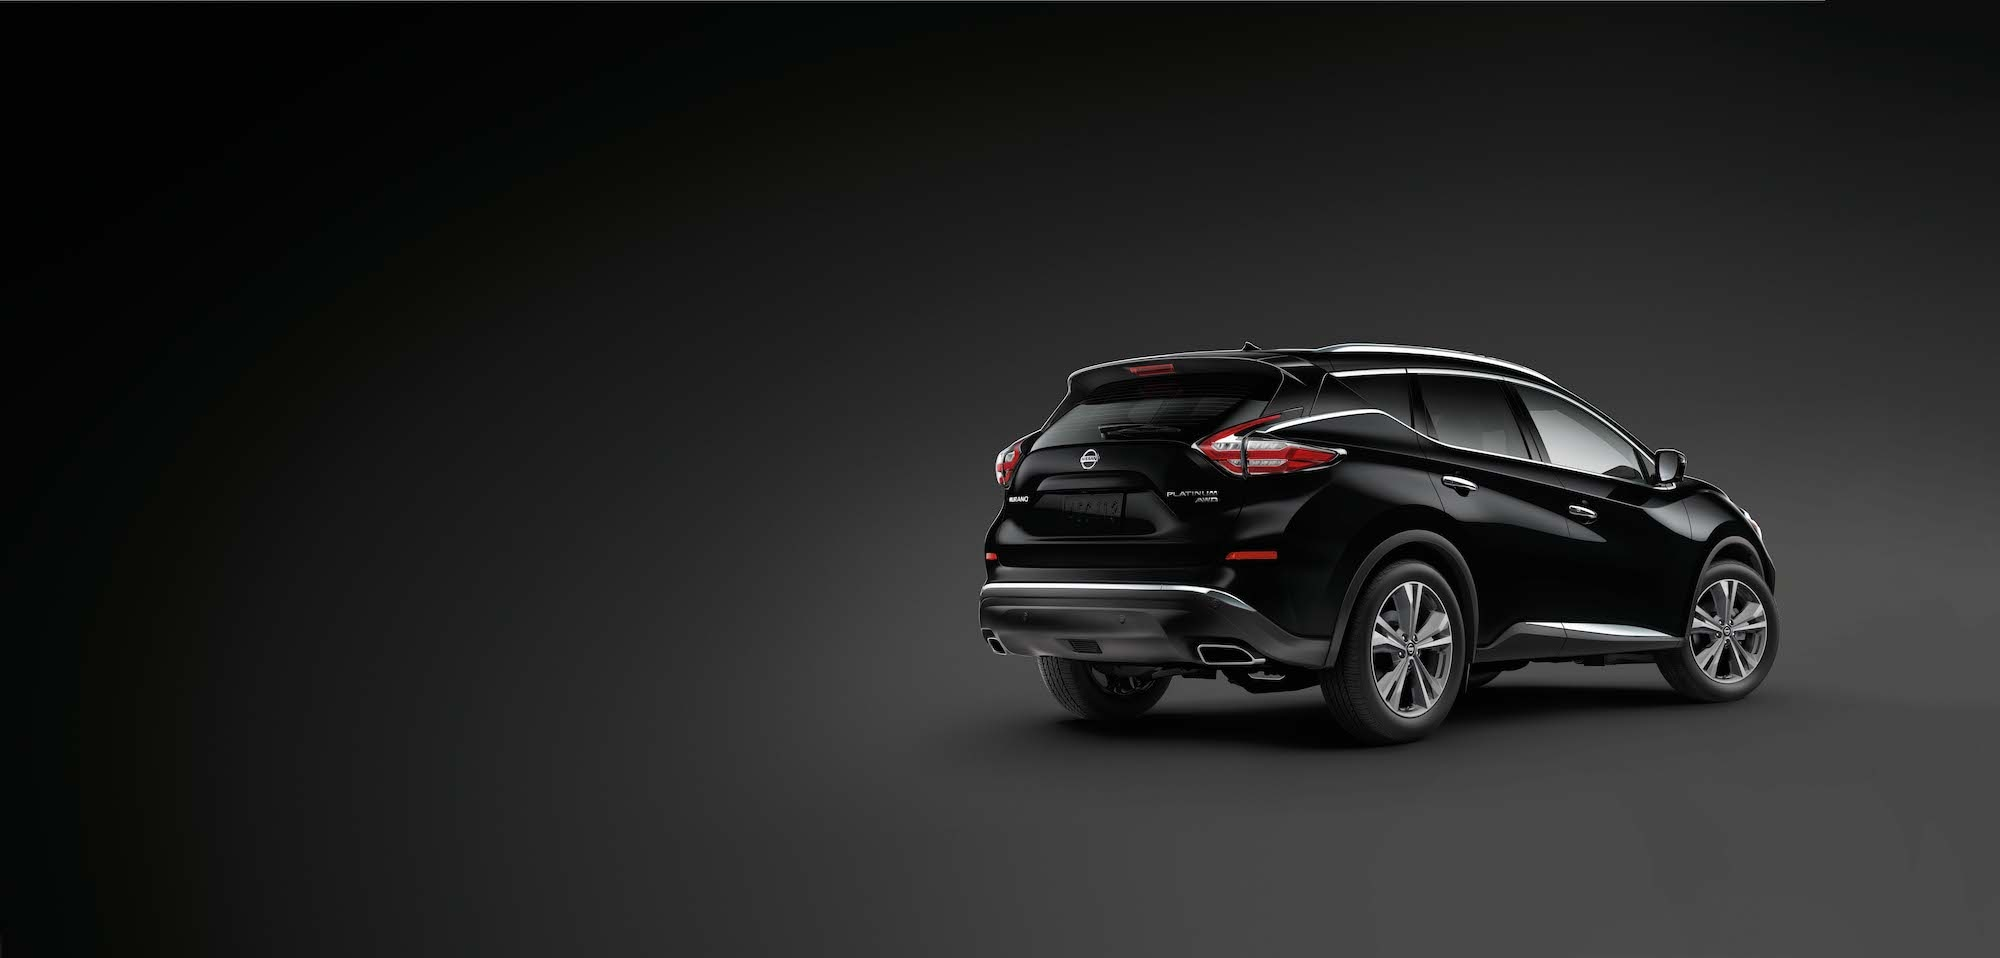 Features of the 2019 Nissan Murano at Hanover Nissan | The rear view of the Black 2019 Murano on a dark background